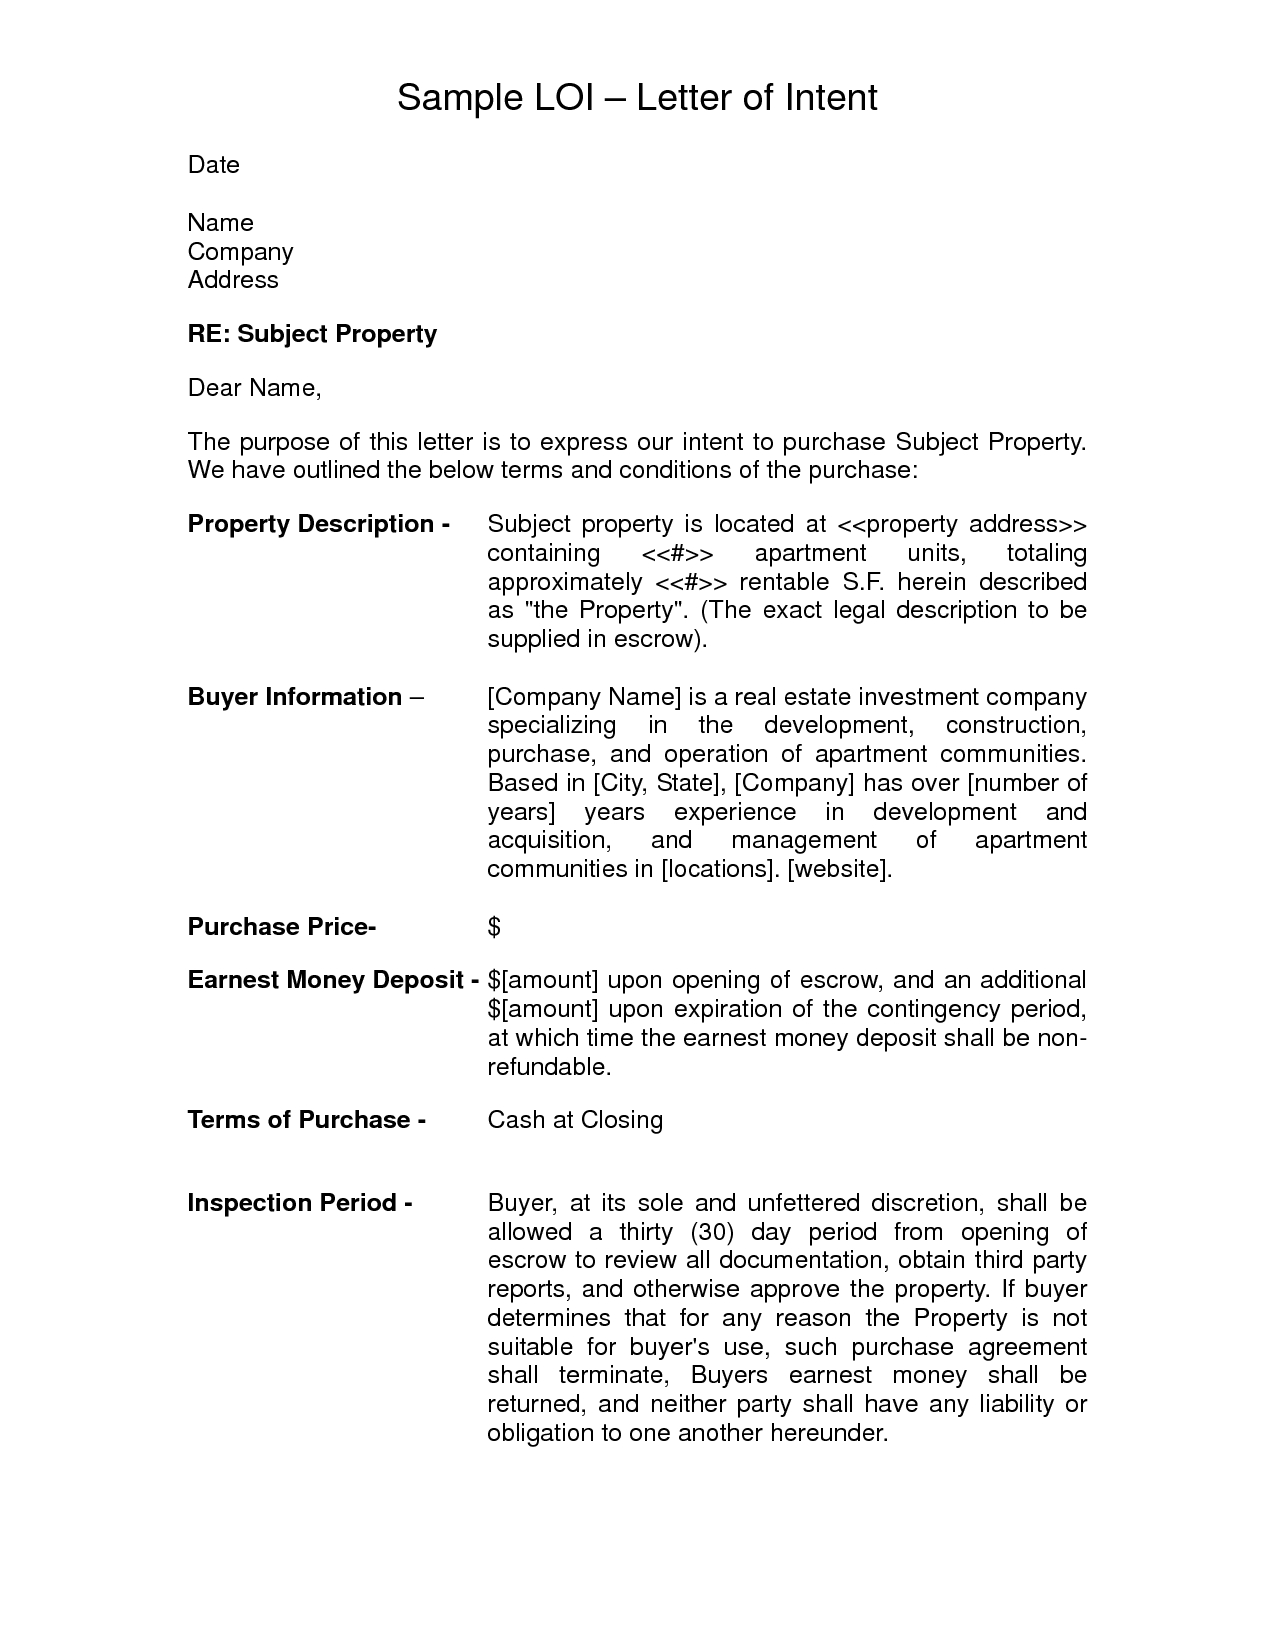 Letter Of Intent to Sell Business Template - Letter Intent to Sell Ideas Sample Real Estate Property